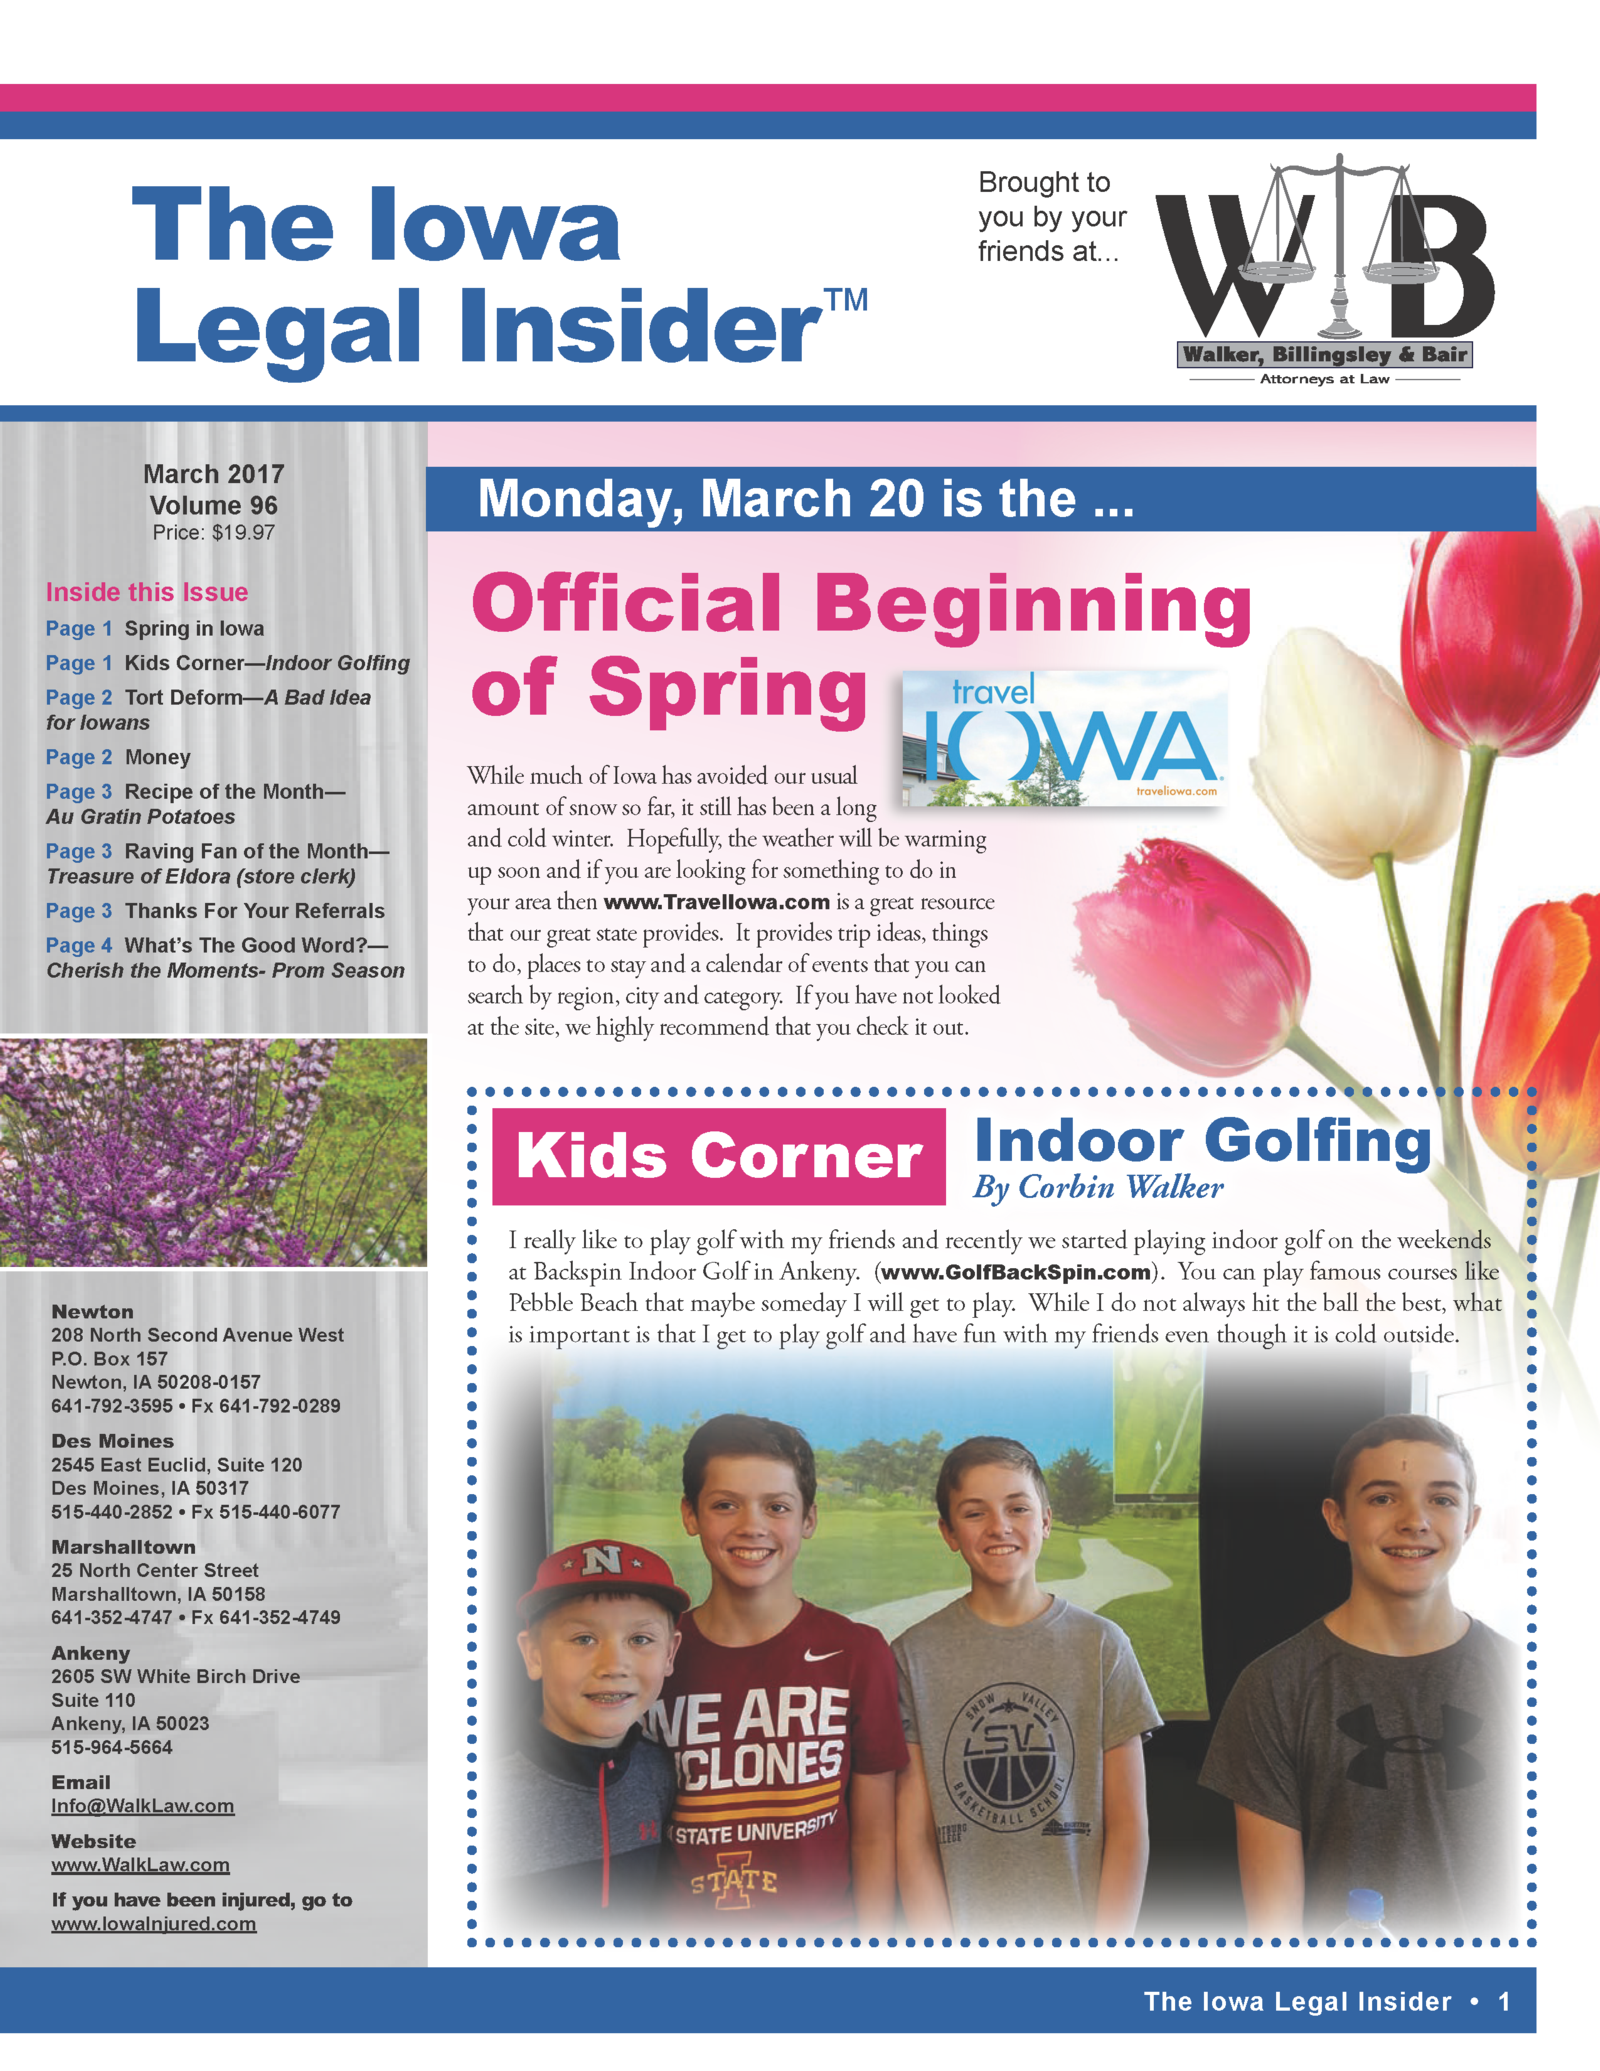 The Iowa Legal Insider Newsletter March 2017 Front page the beginning of spring